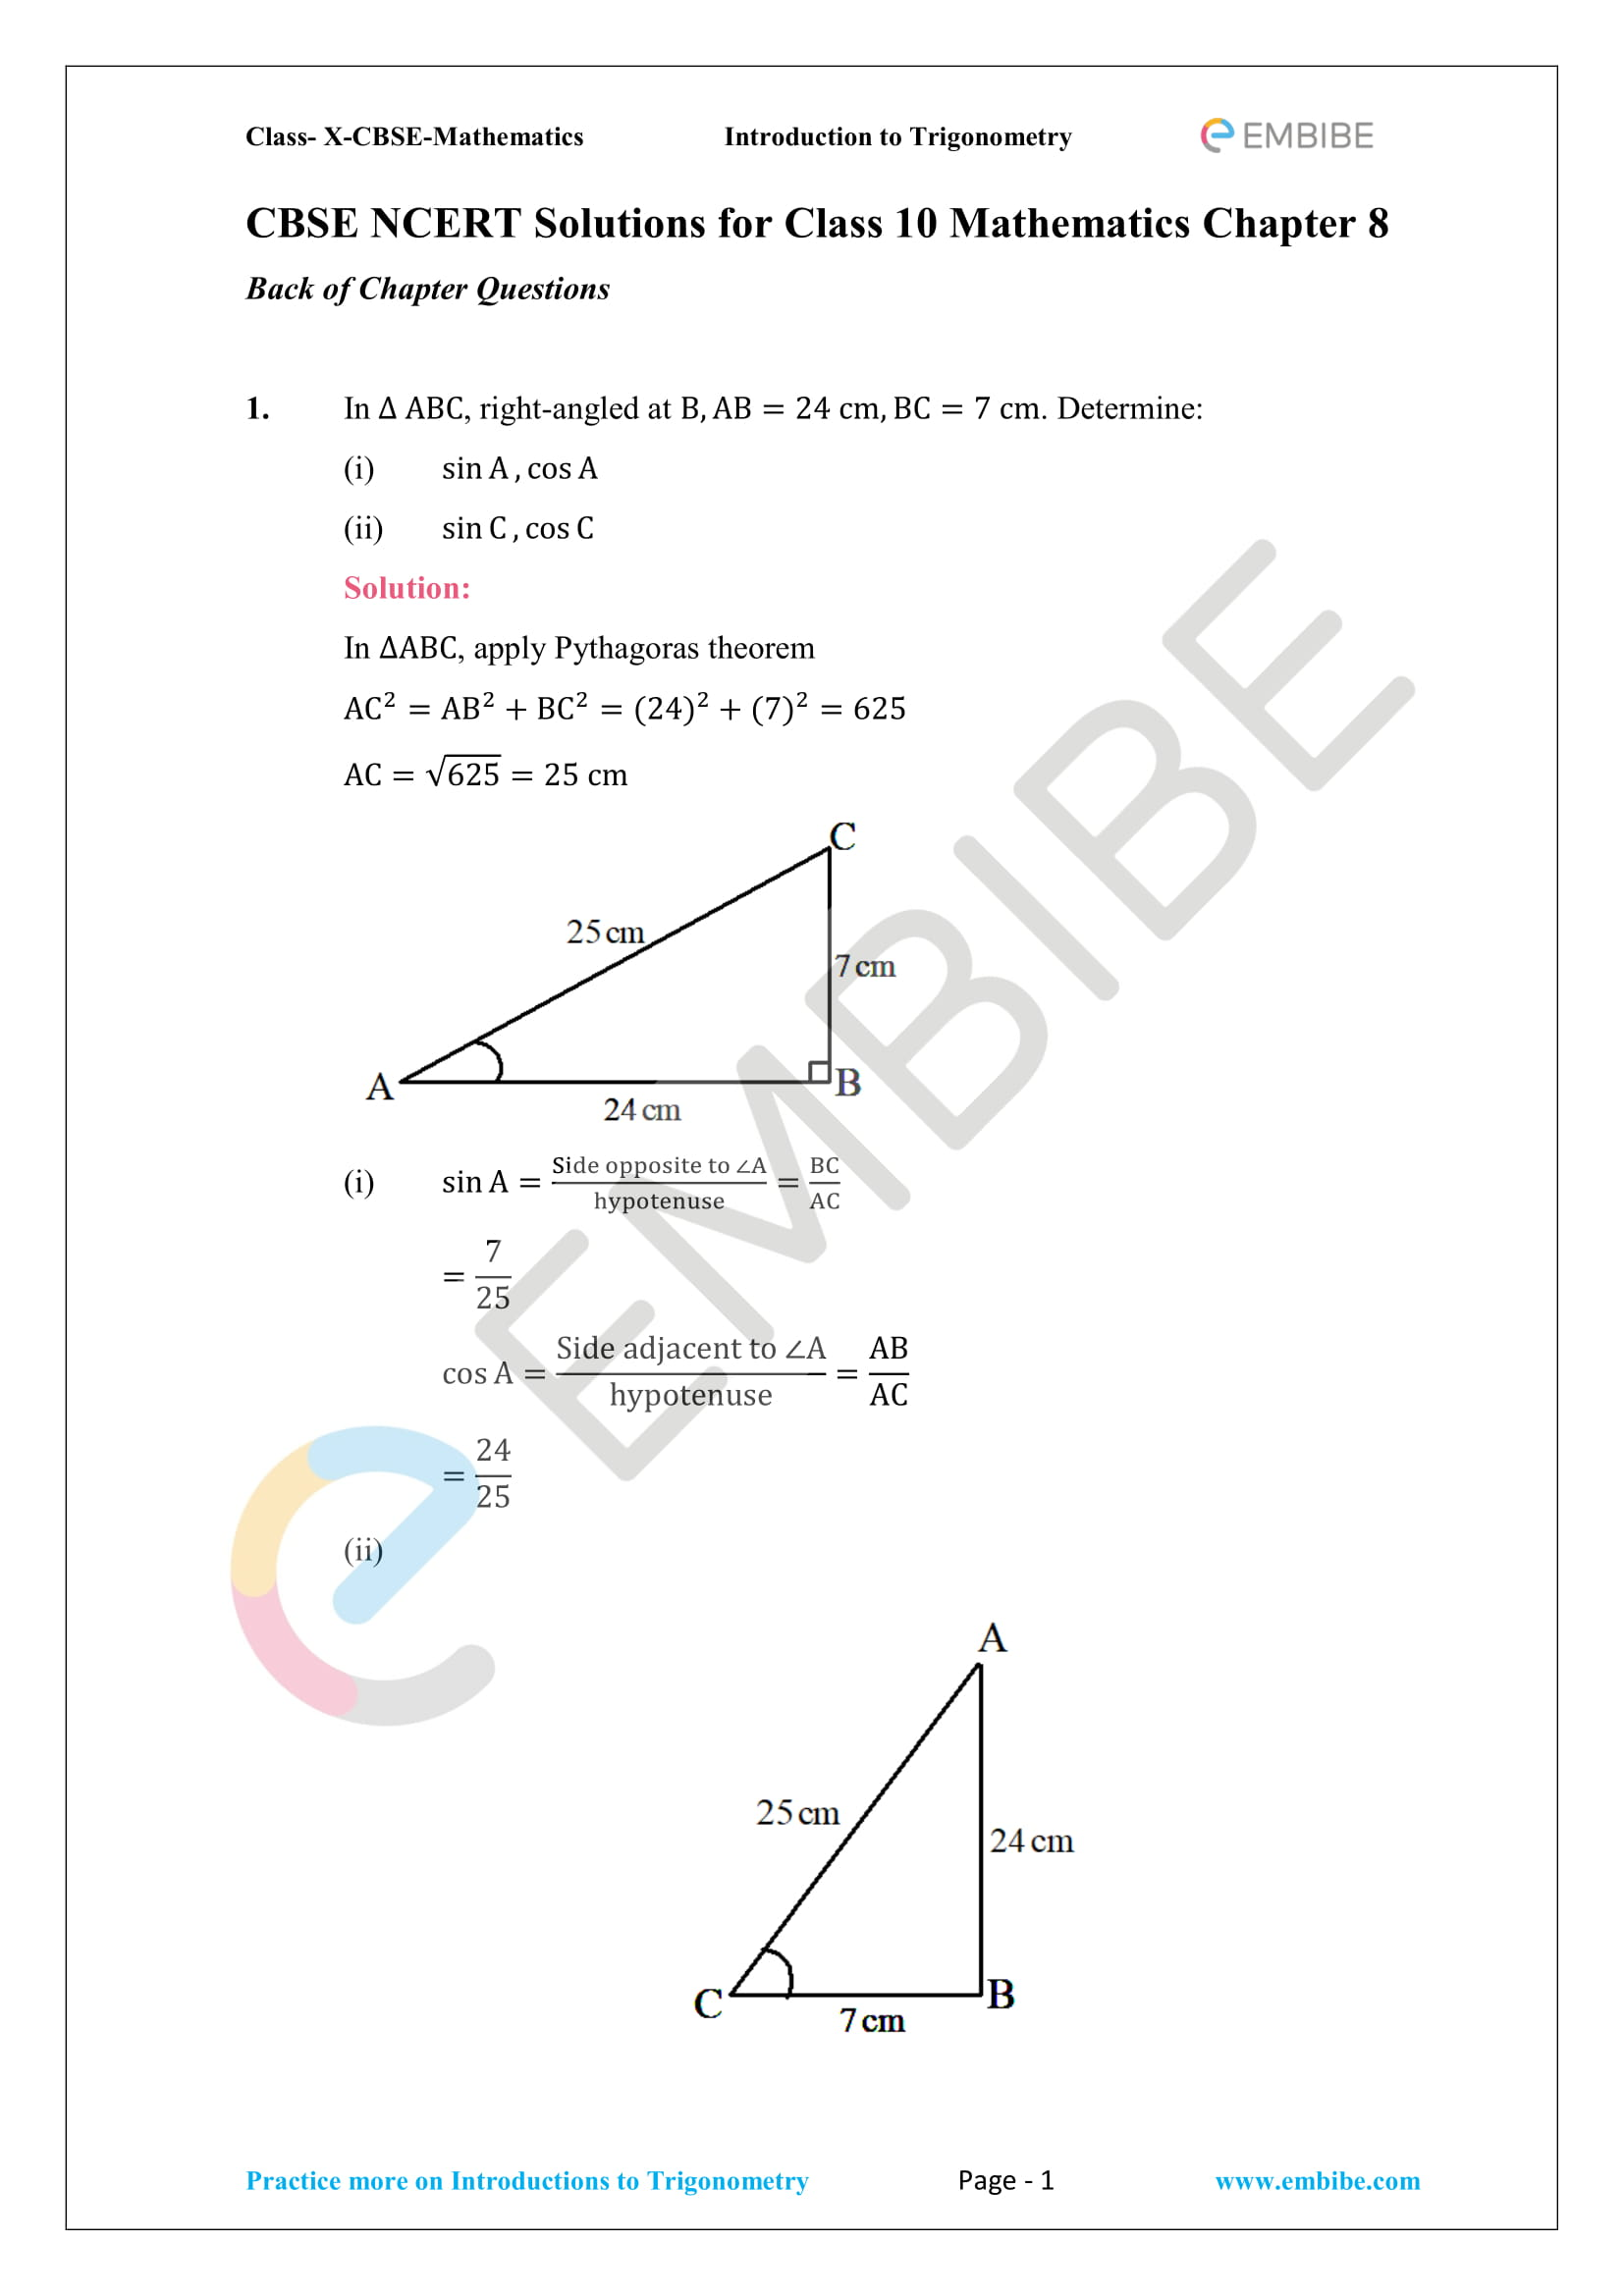 NCERT Solutions For Class 10 Maths Chapter 8: Introduction